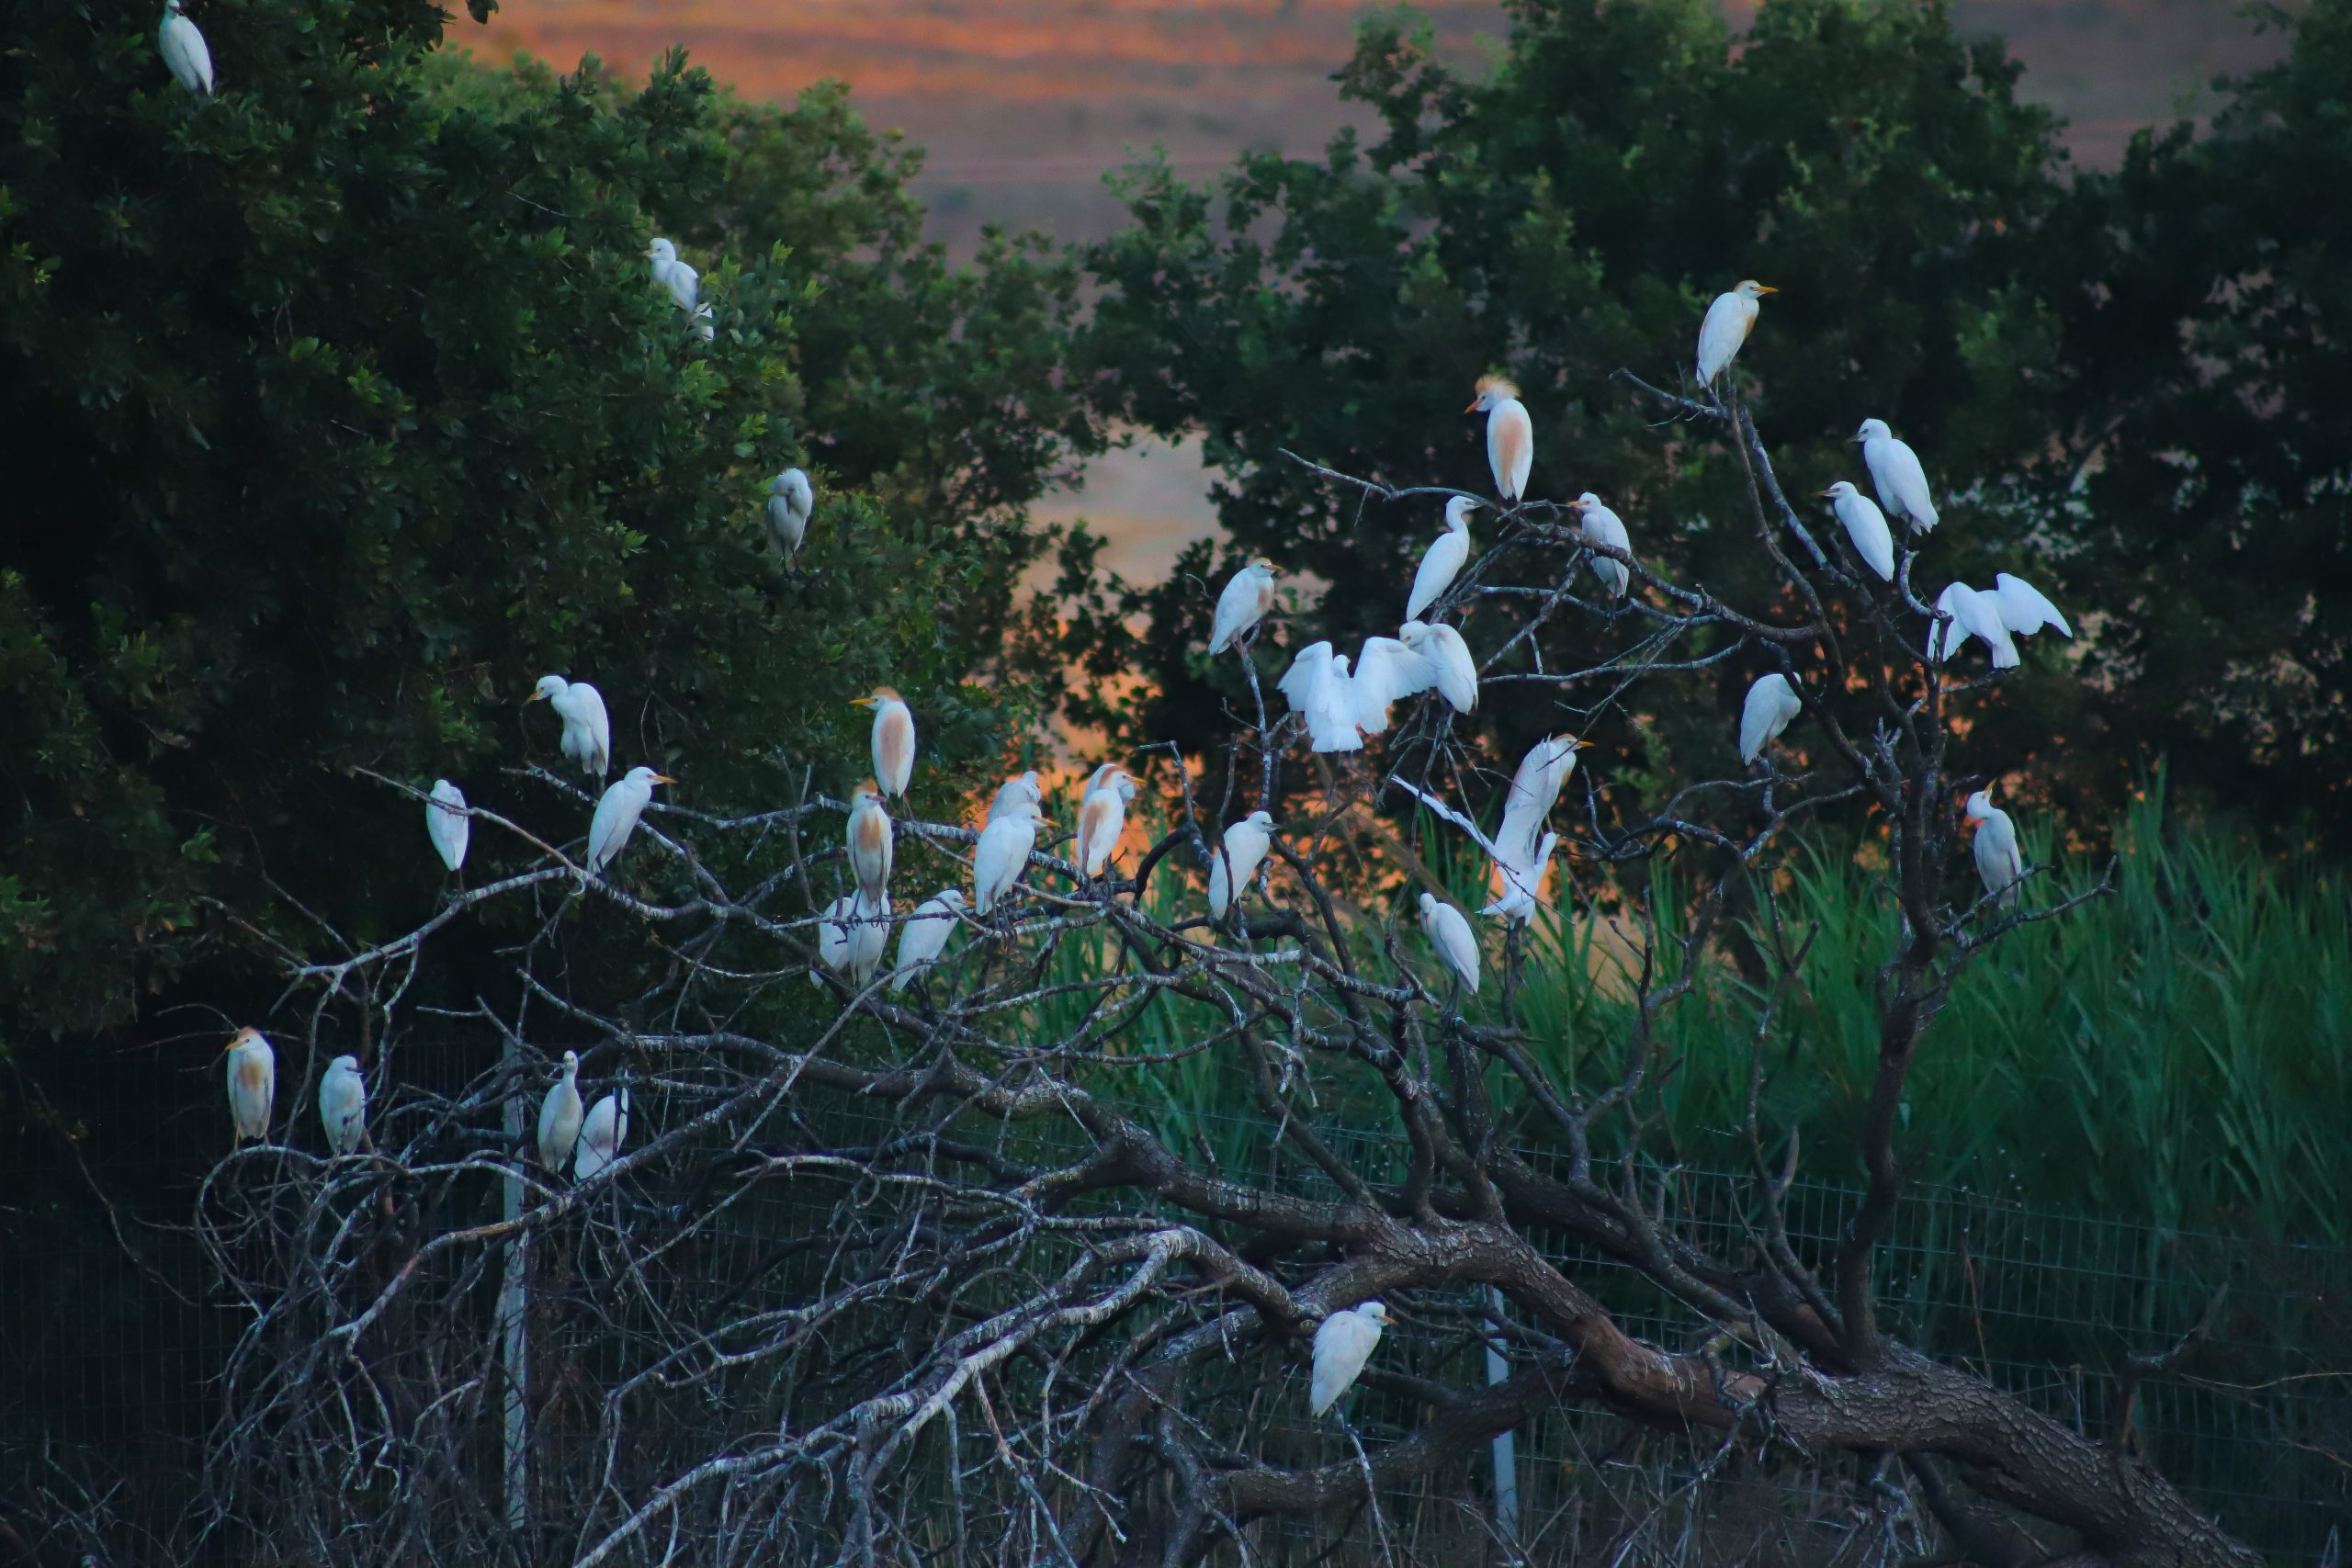 Migrating birds, the winner of bird photography competition